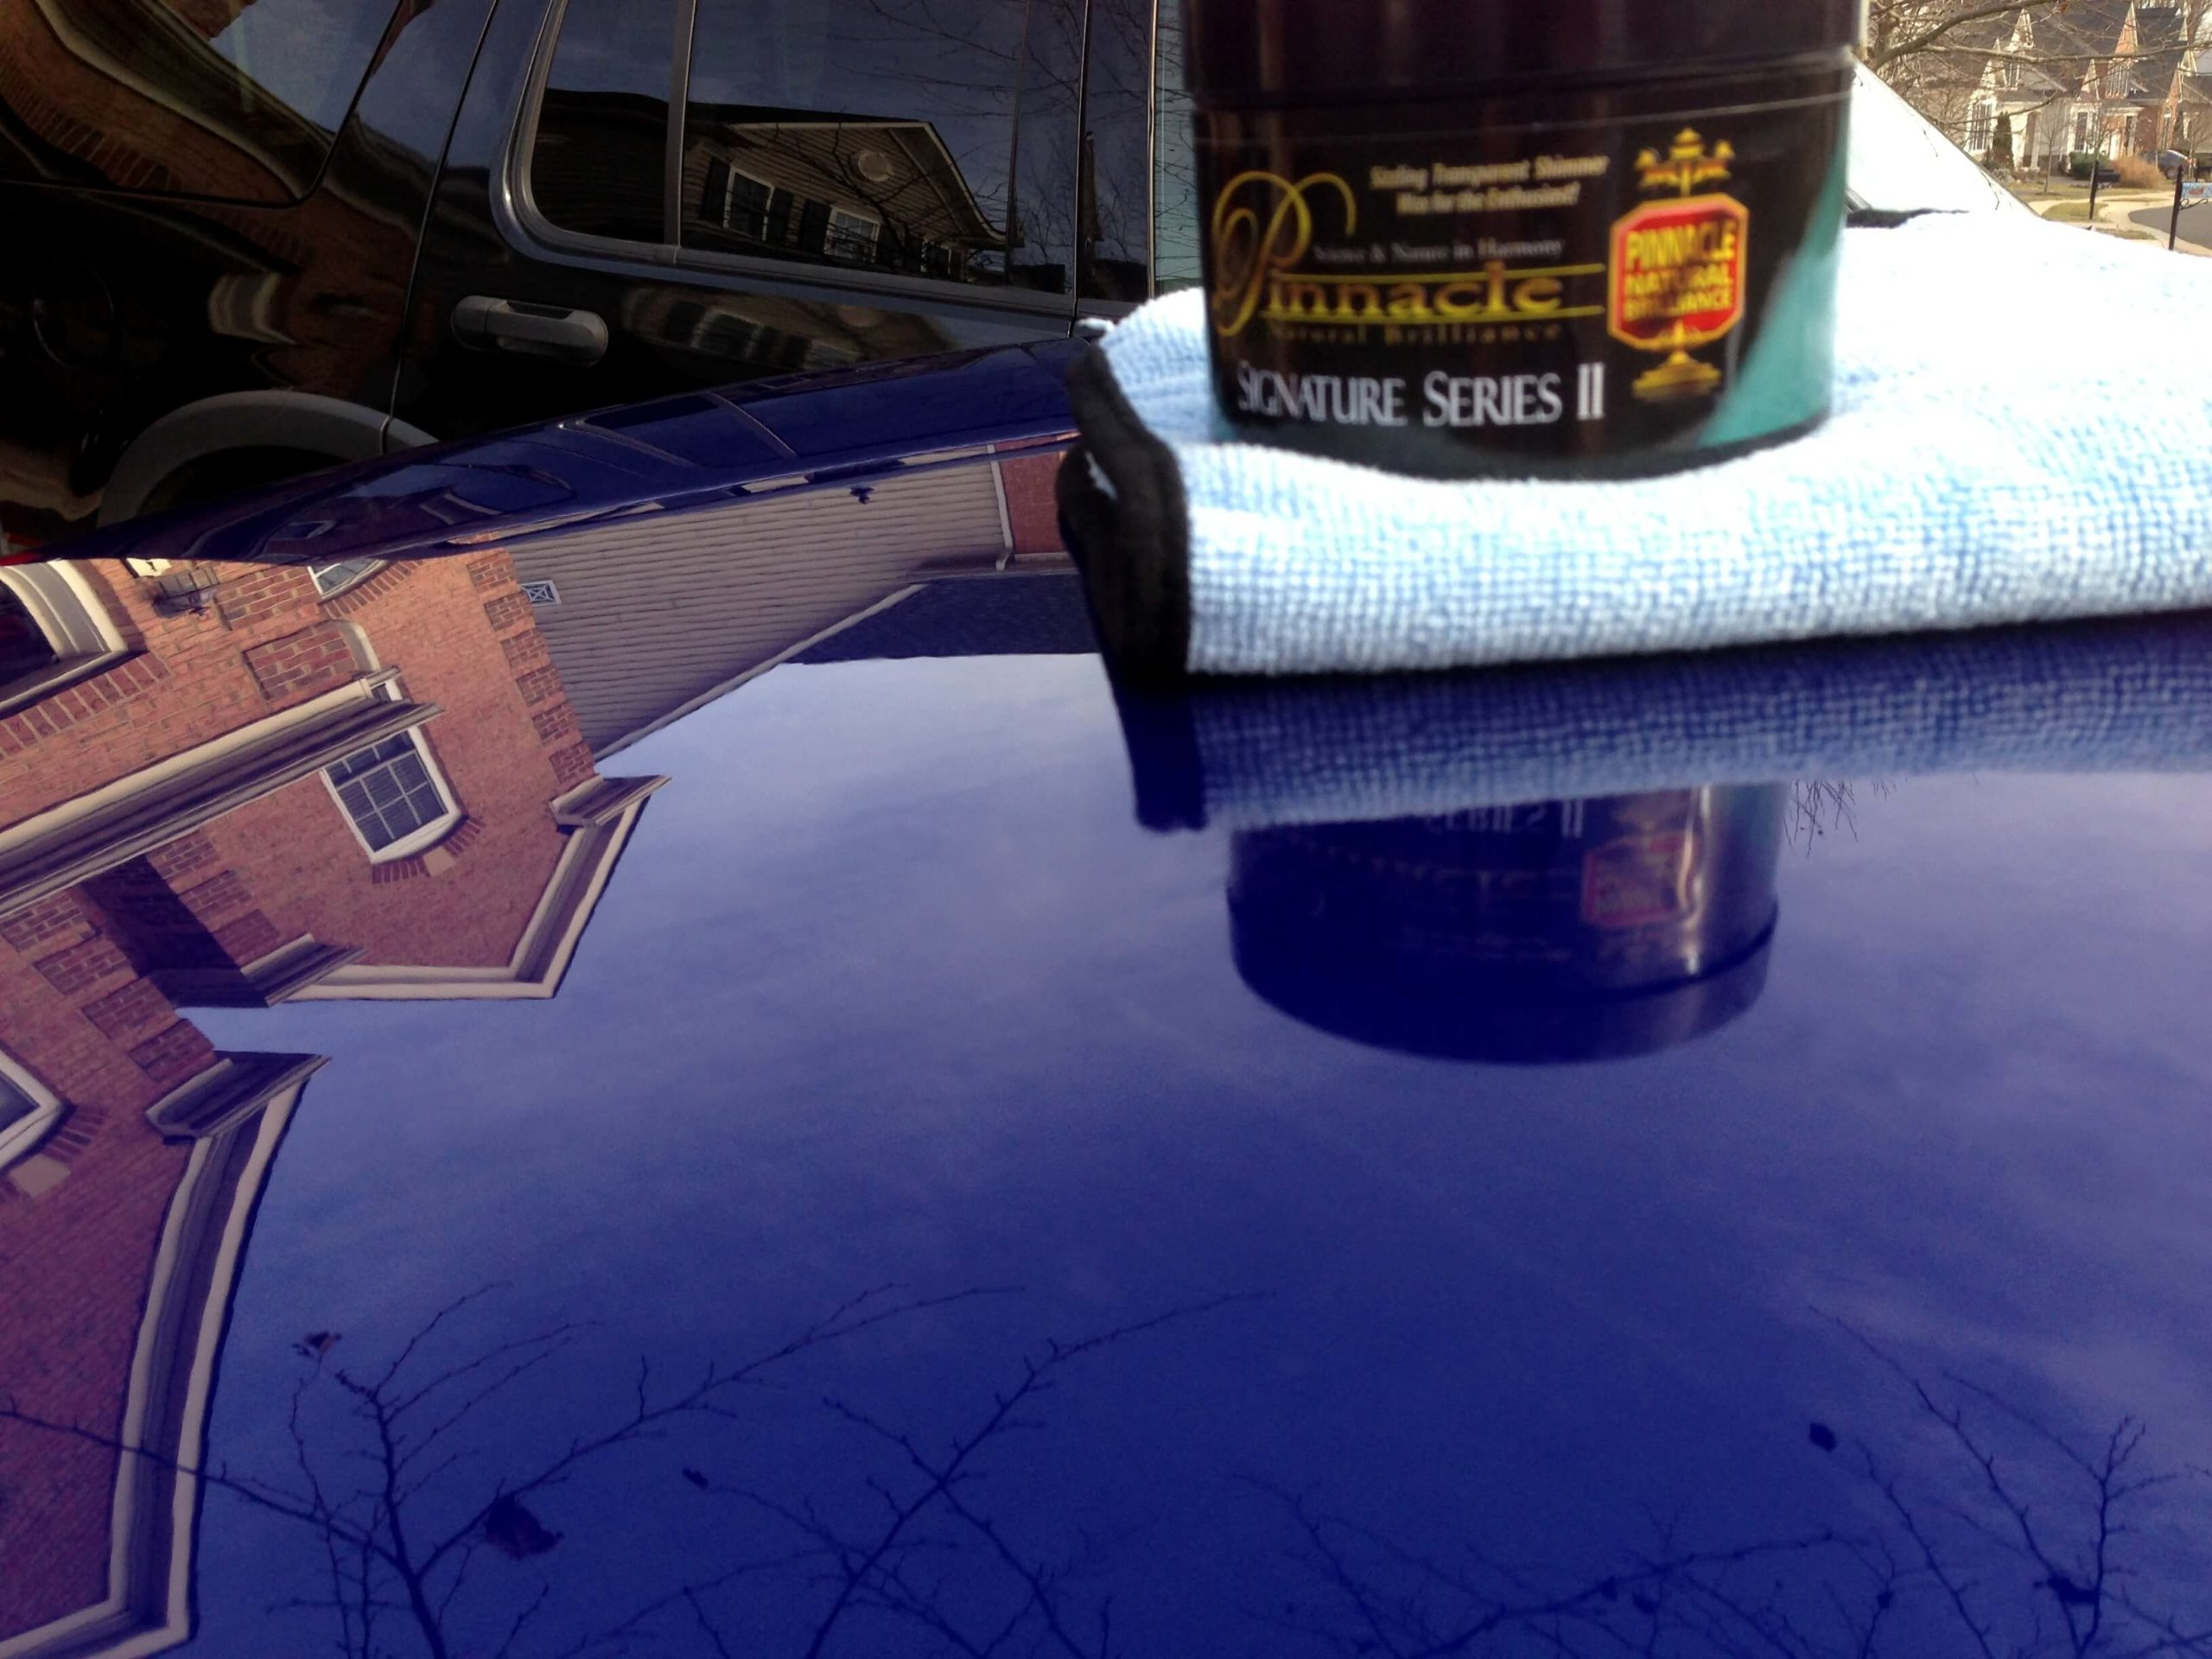 Pinnacle Signature Series II Carnauba Paste Wax Result